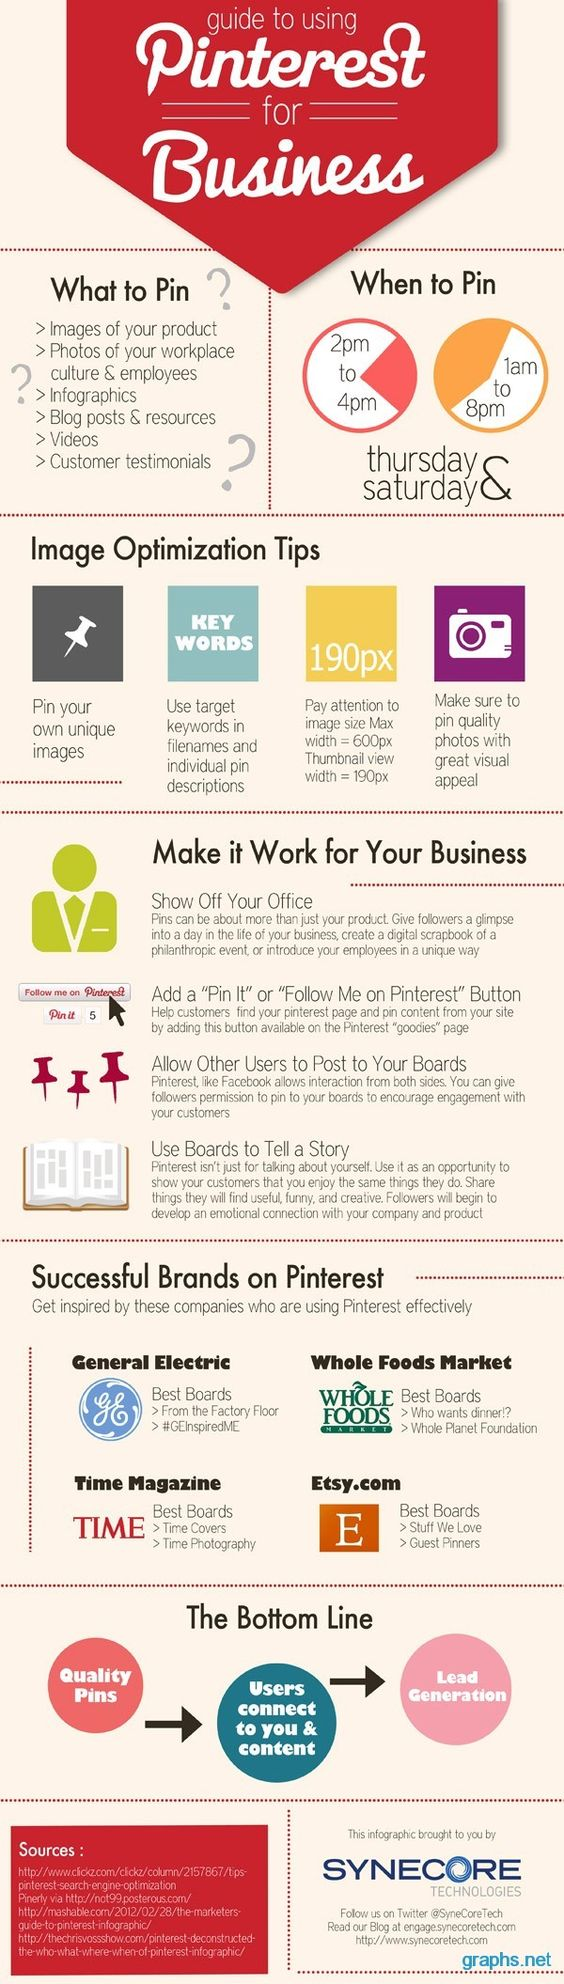 Ways to Use #Pinterest for #Business  #RePin by AT Social Media Marketing - Pinterest Marketing Specialists ATSocialMedia.co.uk